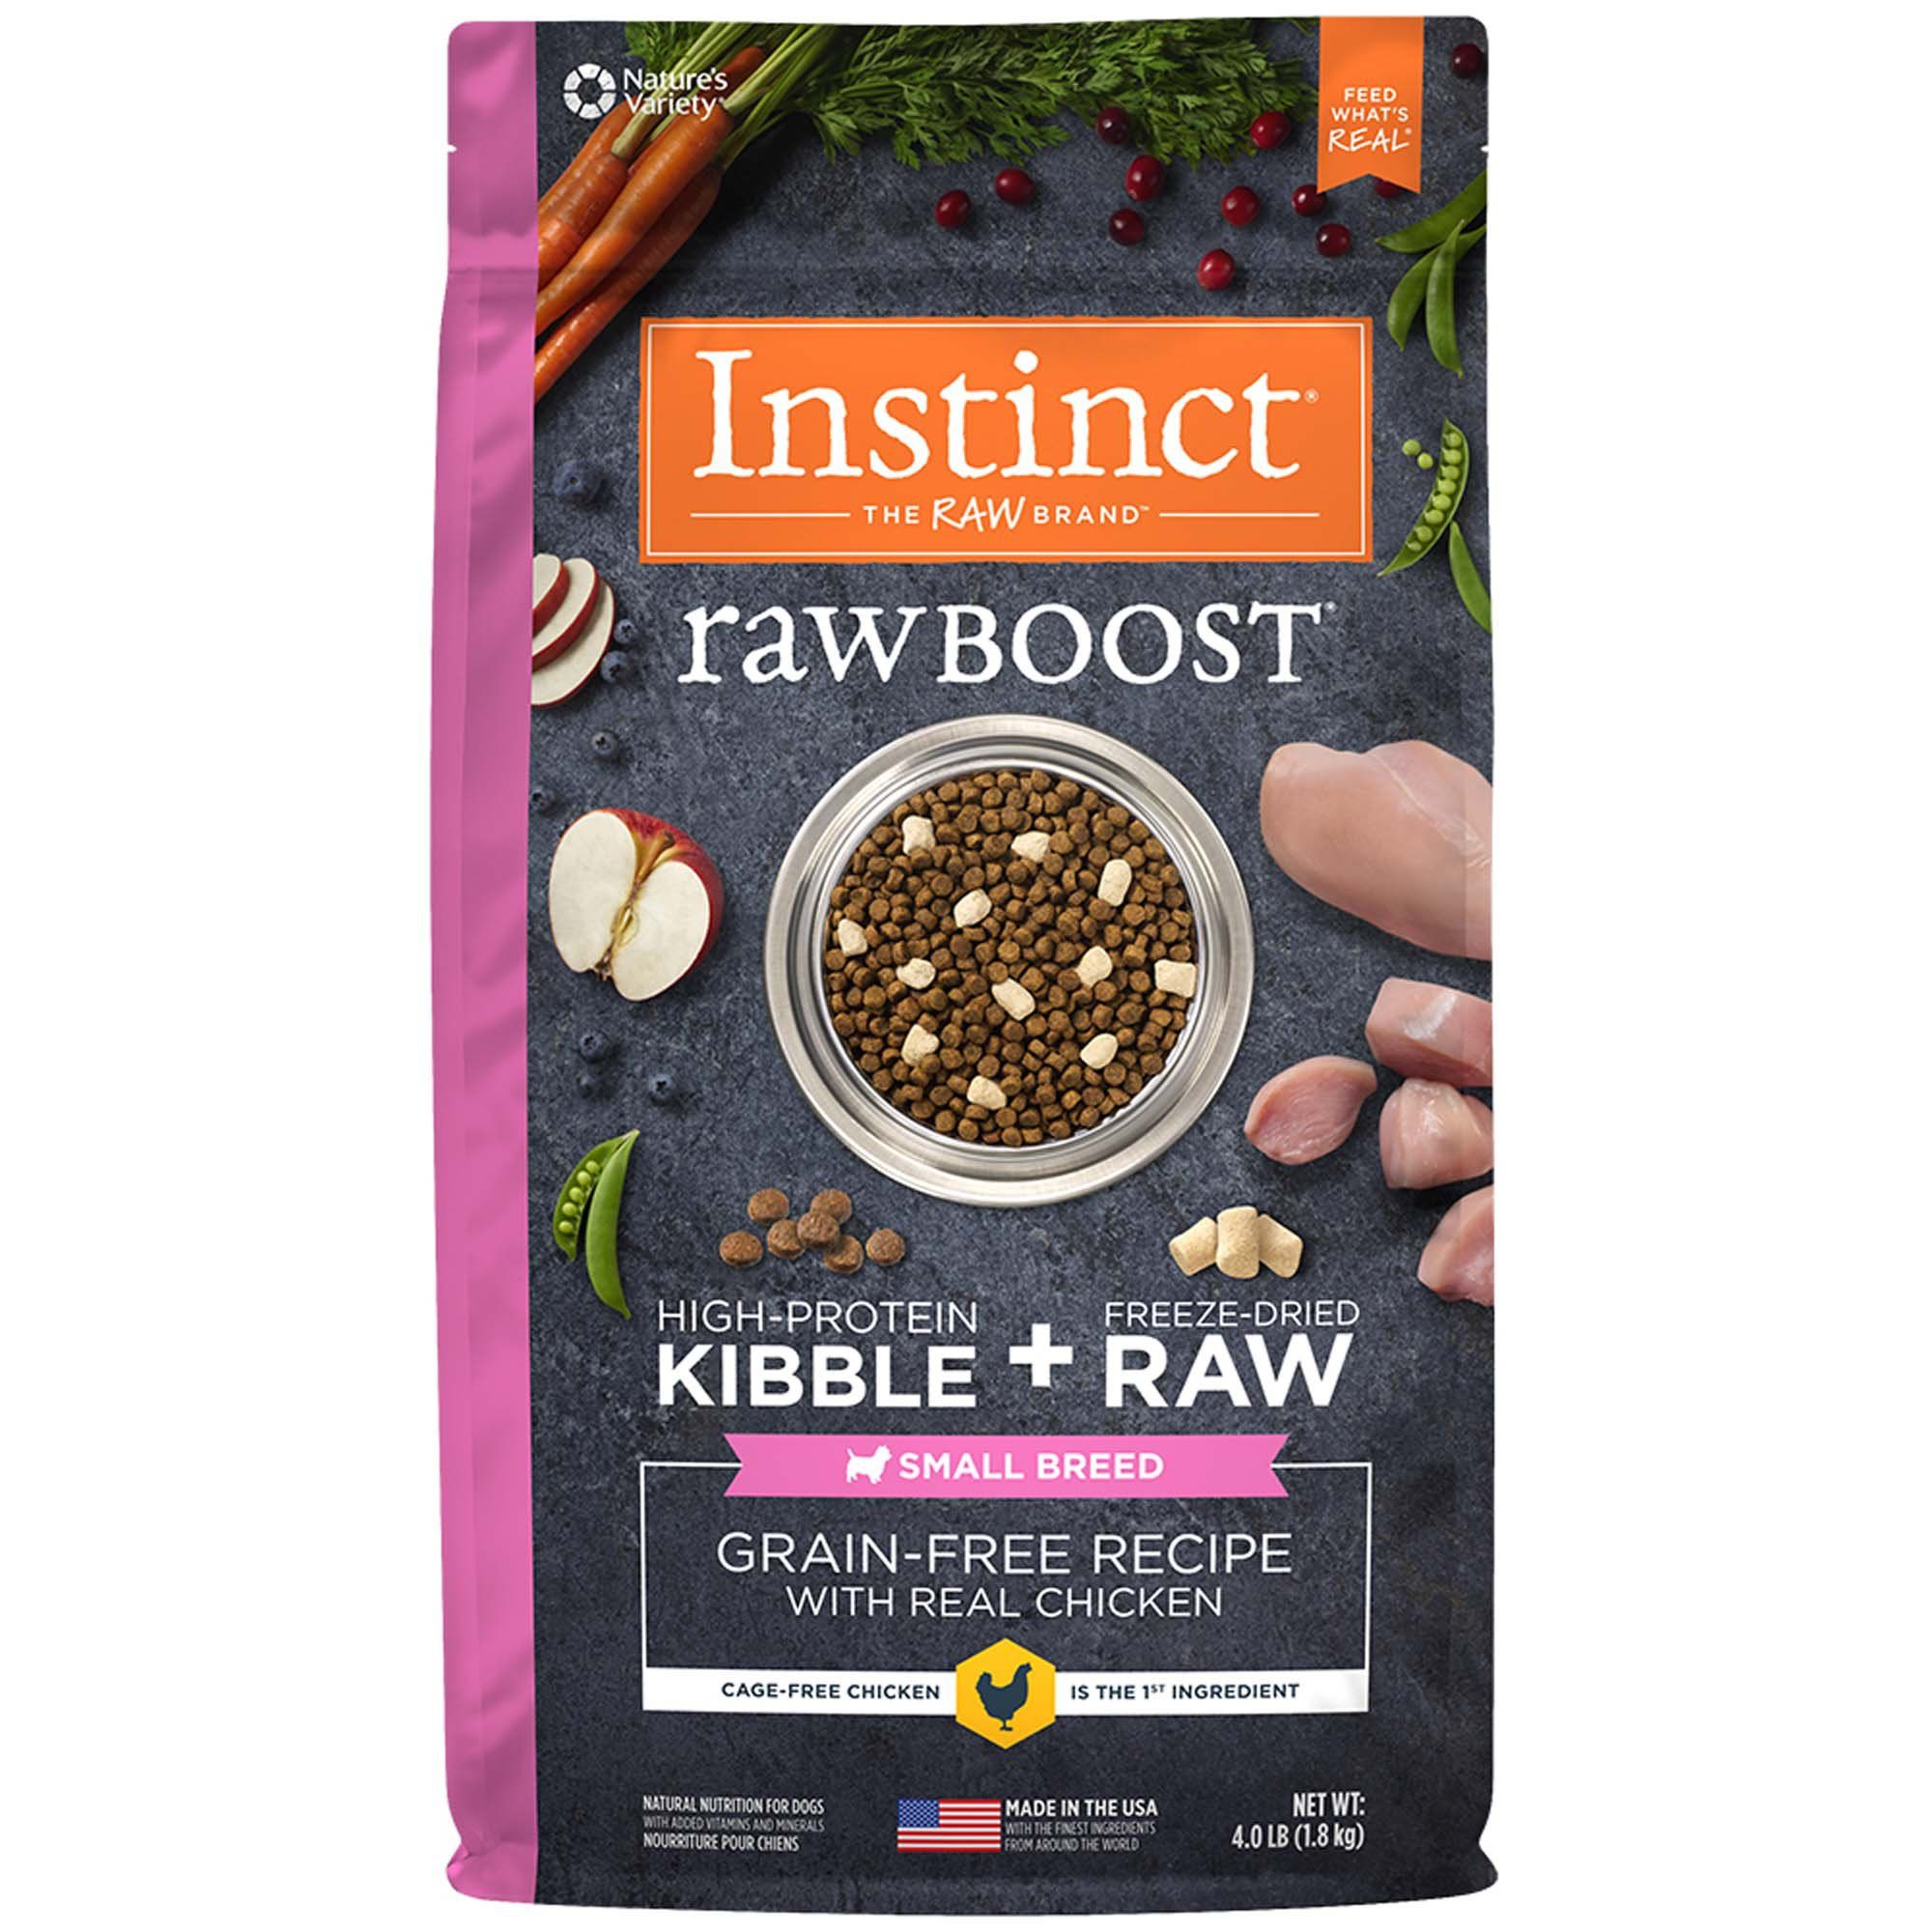 Instinct raw boost small breed grainfree recipe with real